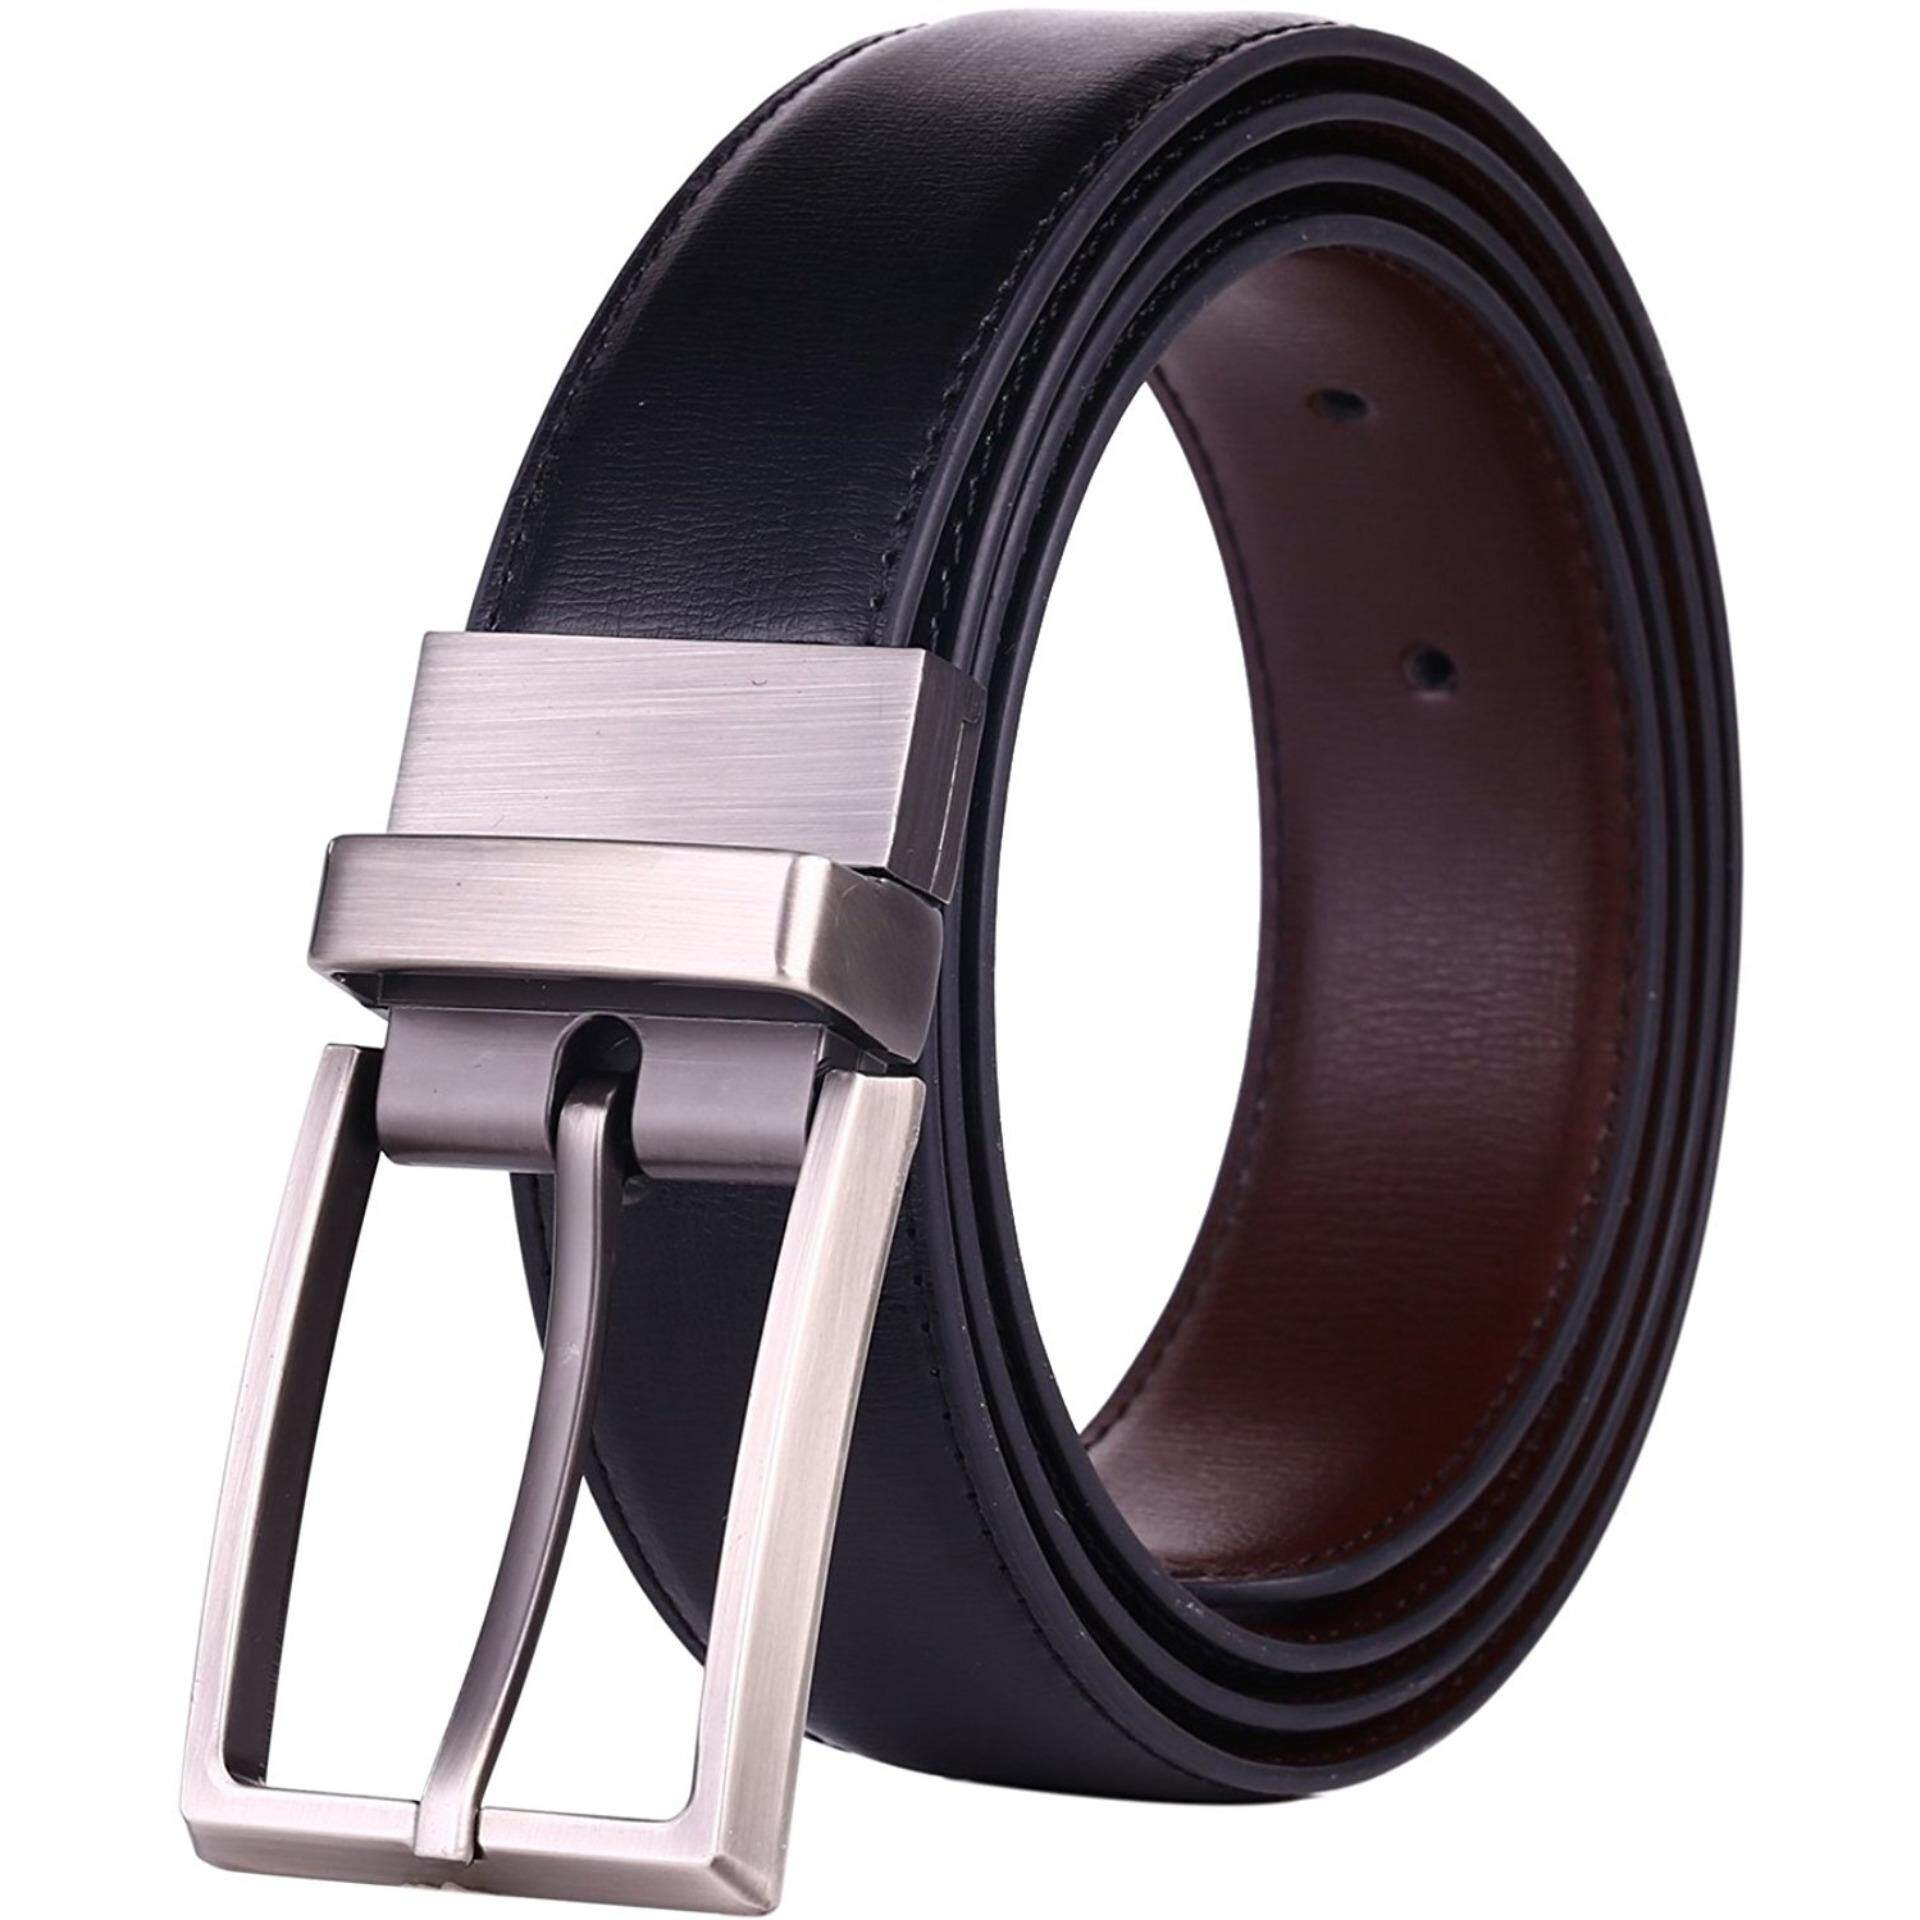 Purchase 【125Cm】Q Shop Men S Leather Belt Premium Quality Reversible Rotated Buckle Belt With Gift Box Black Brown Intl